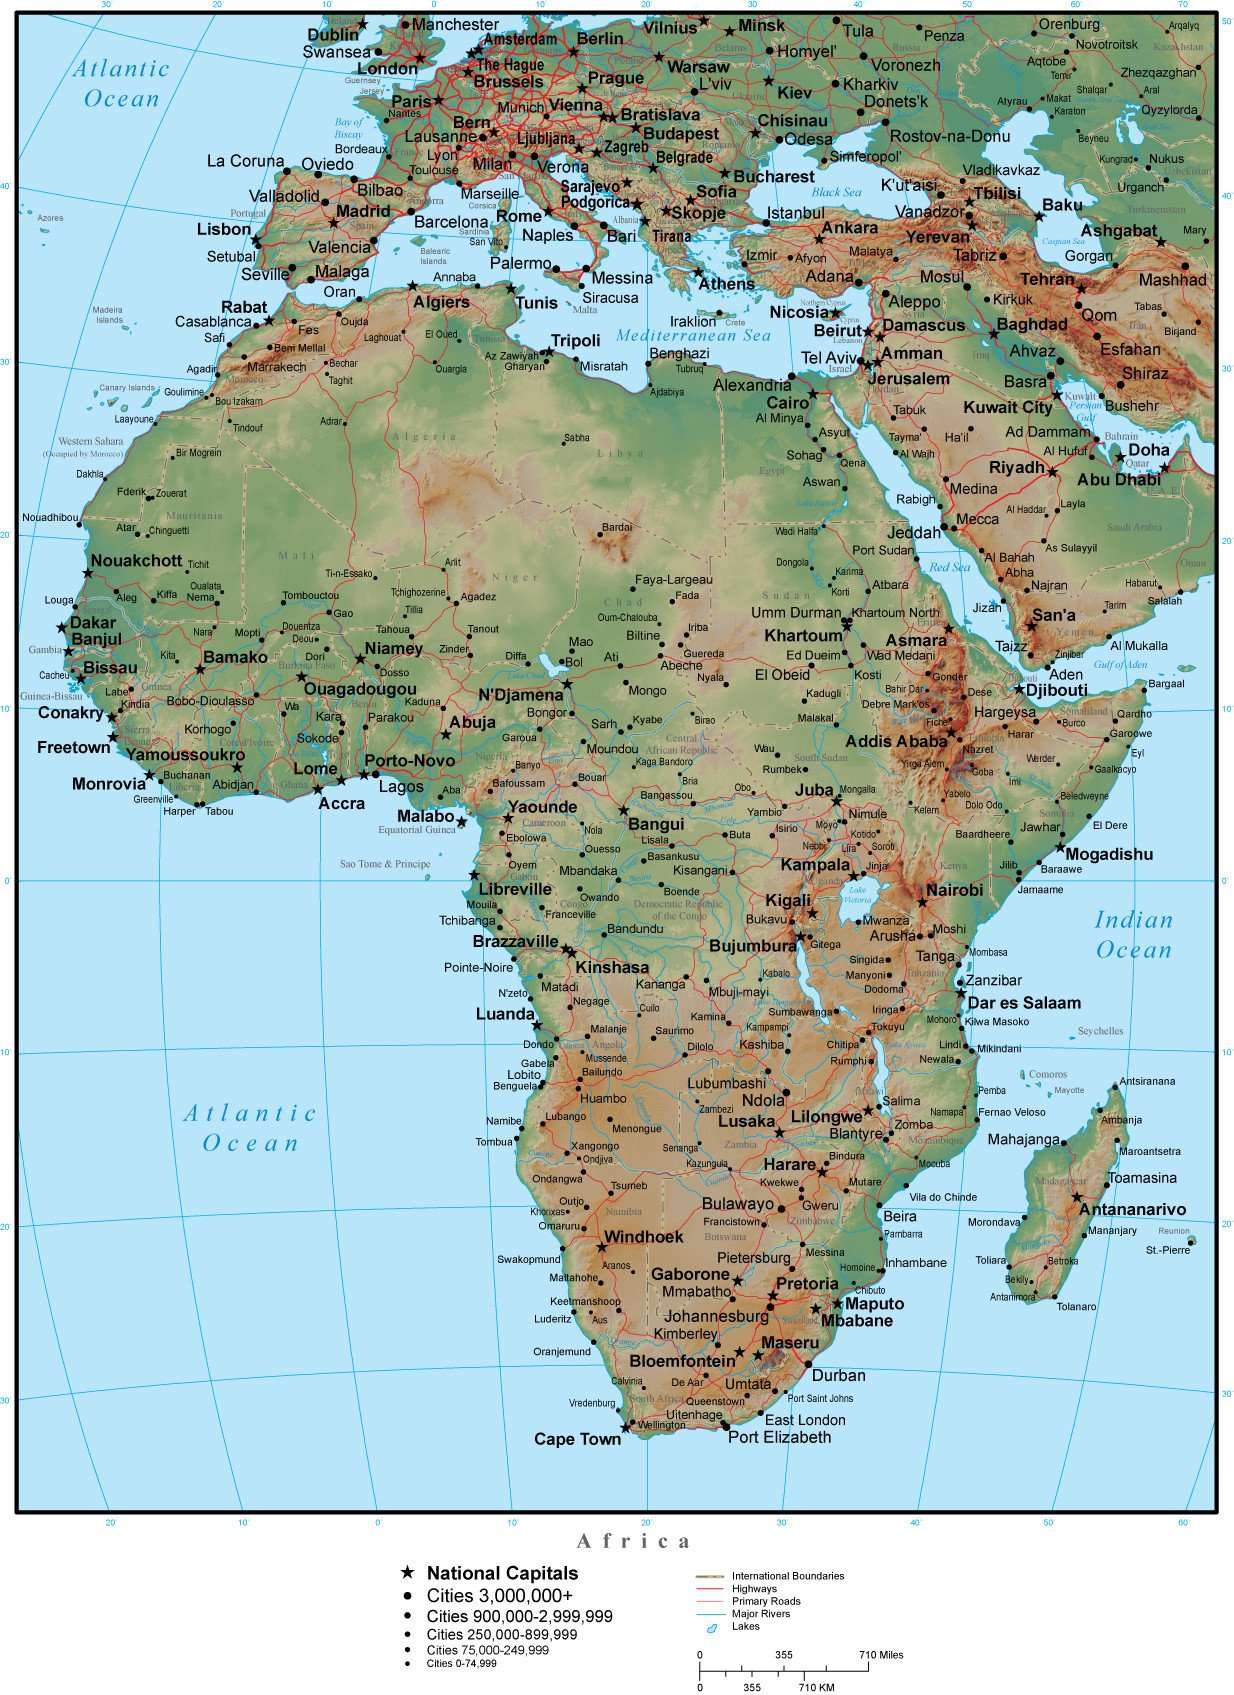 Africa Terrain map in Adobe Illustrator vector format with